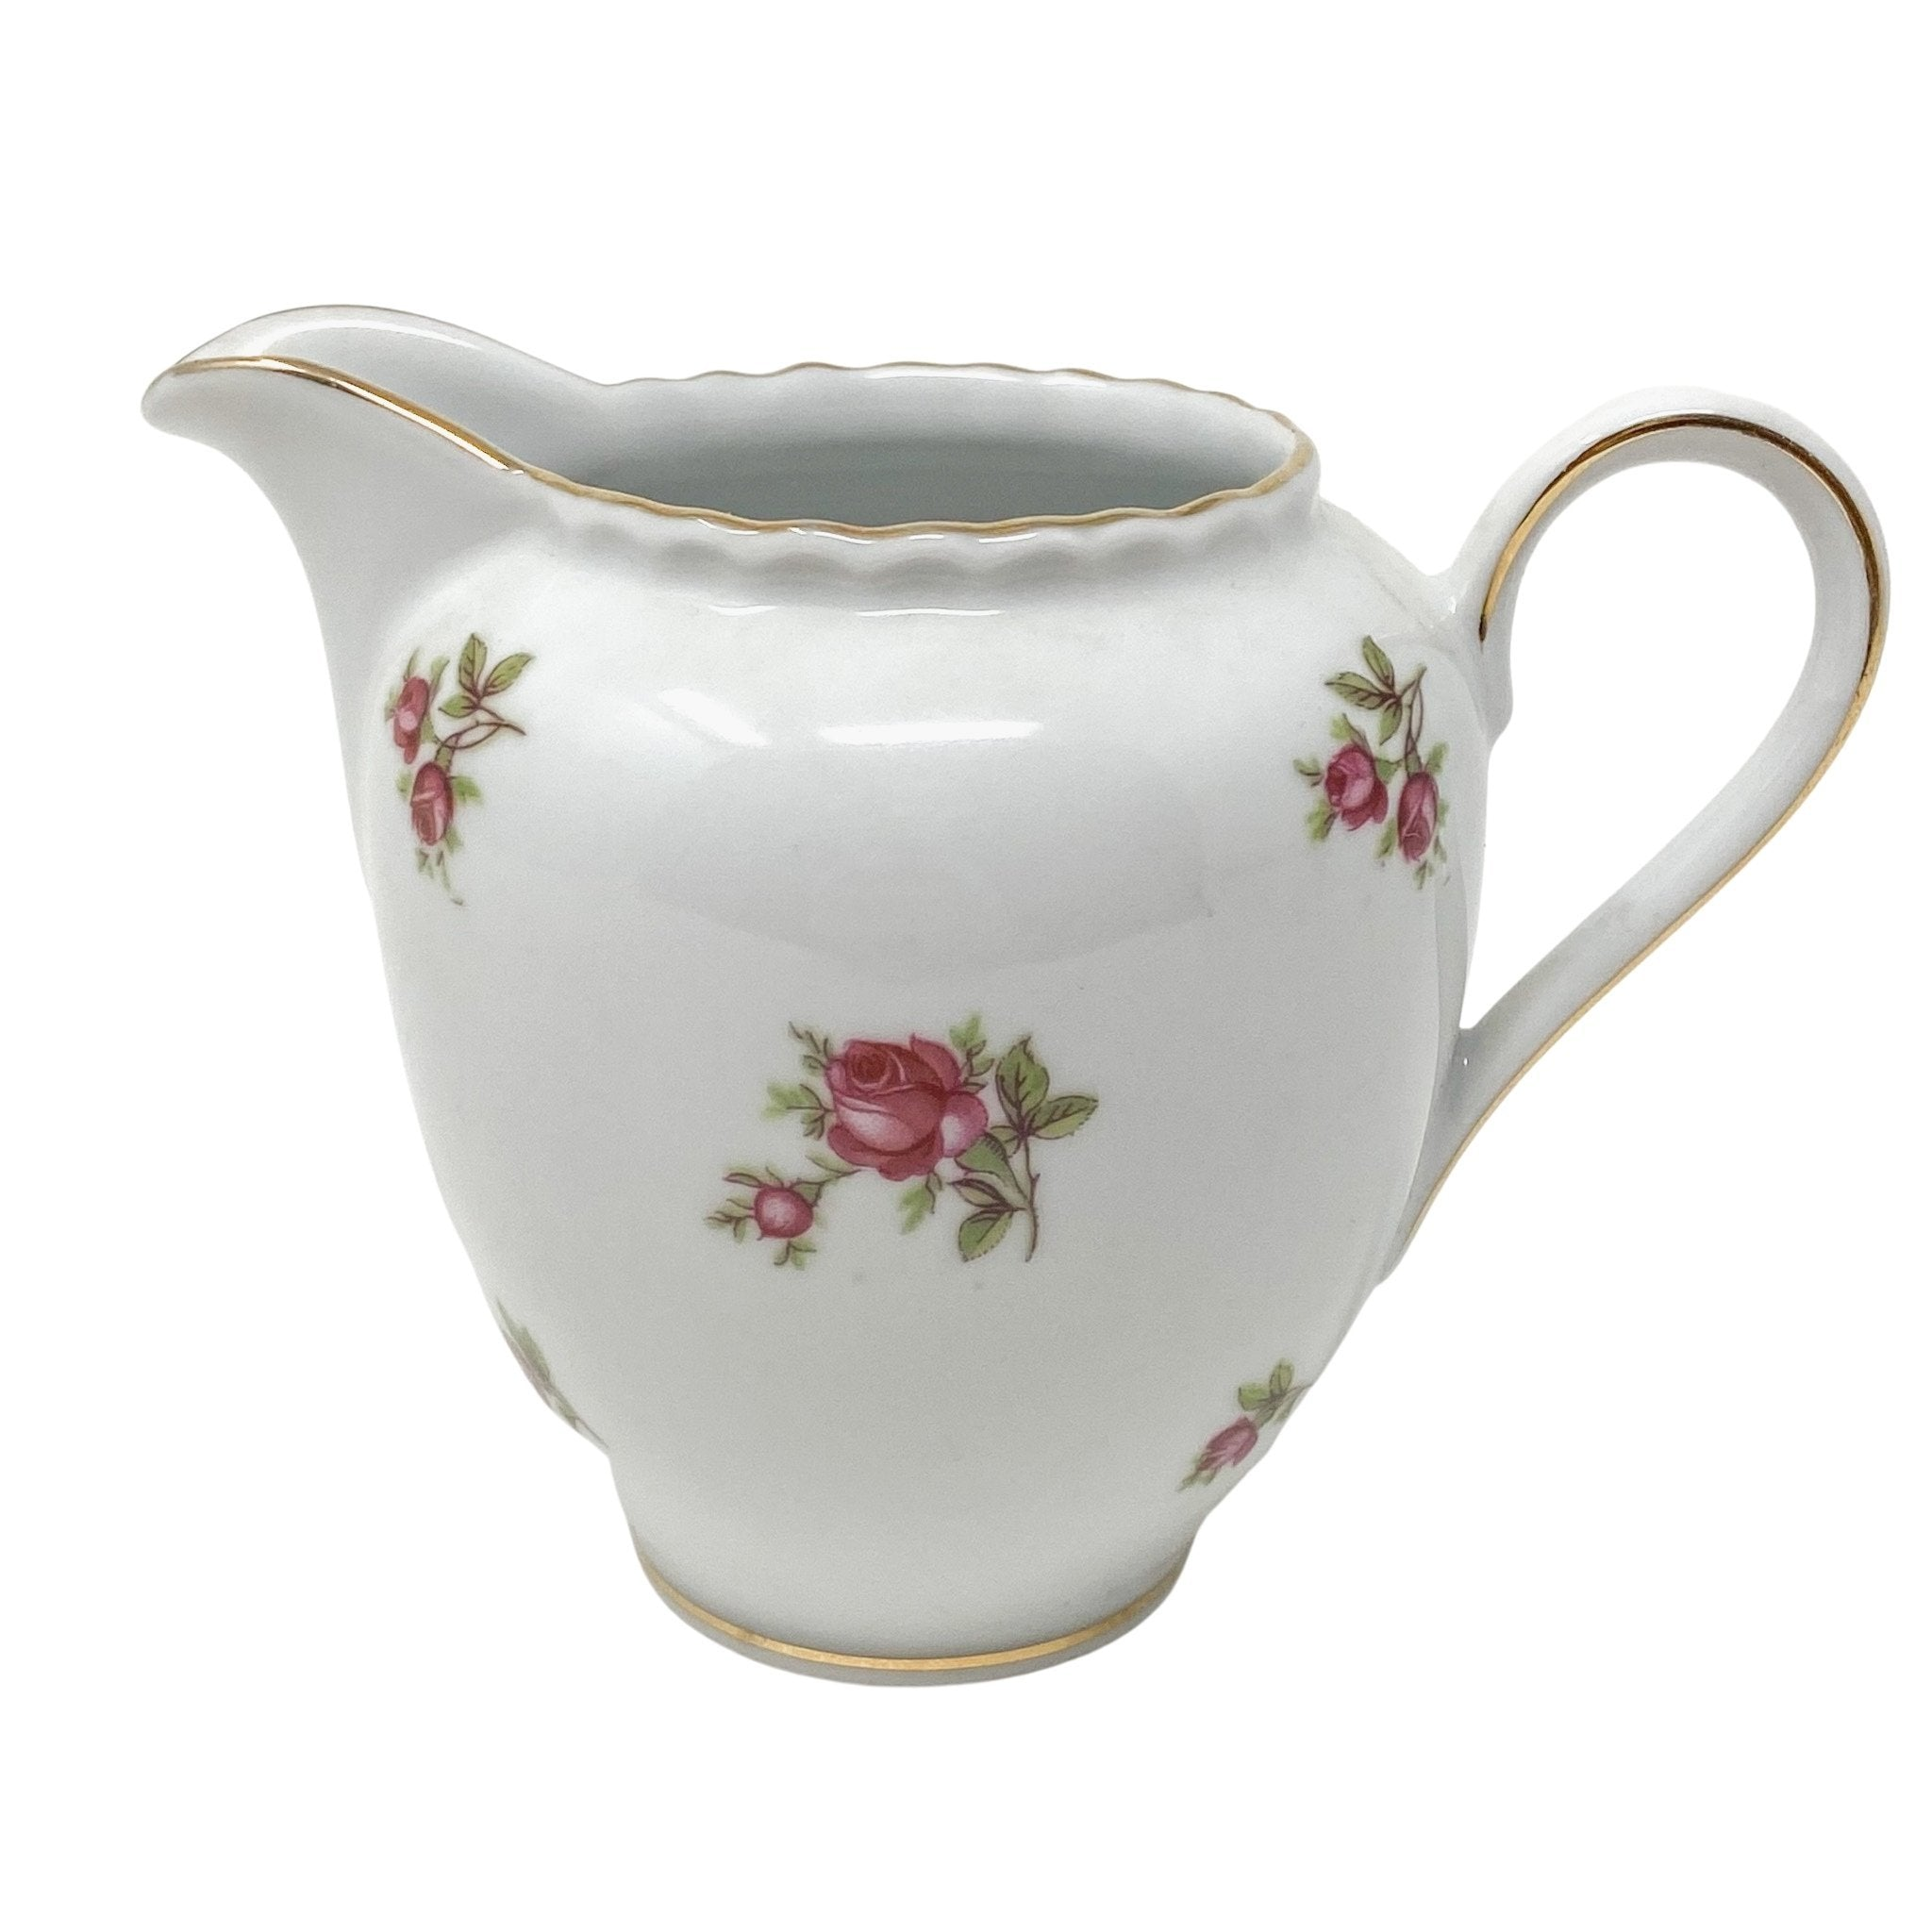 HMS Royal Hanover Pink Rose | Creamer | HMS Royal Hanover - The Brooklyn Teacup